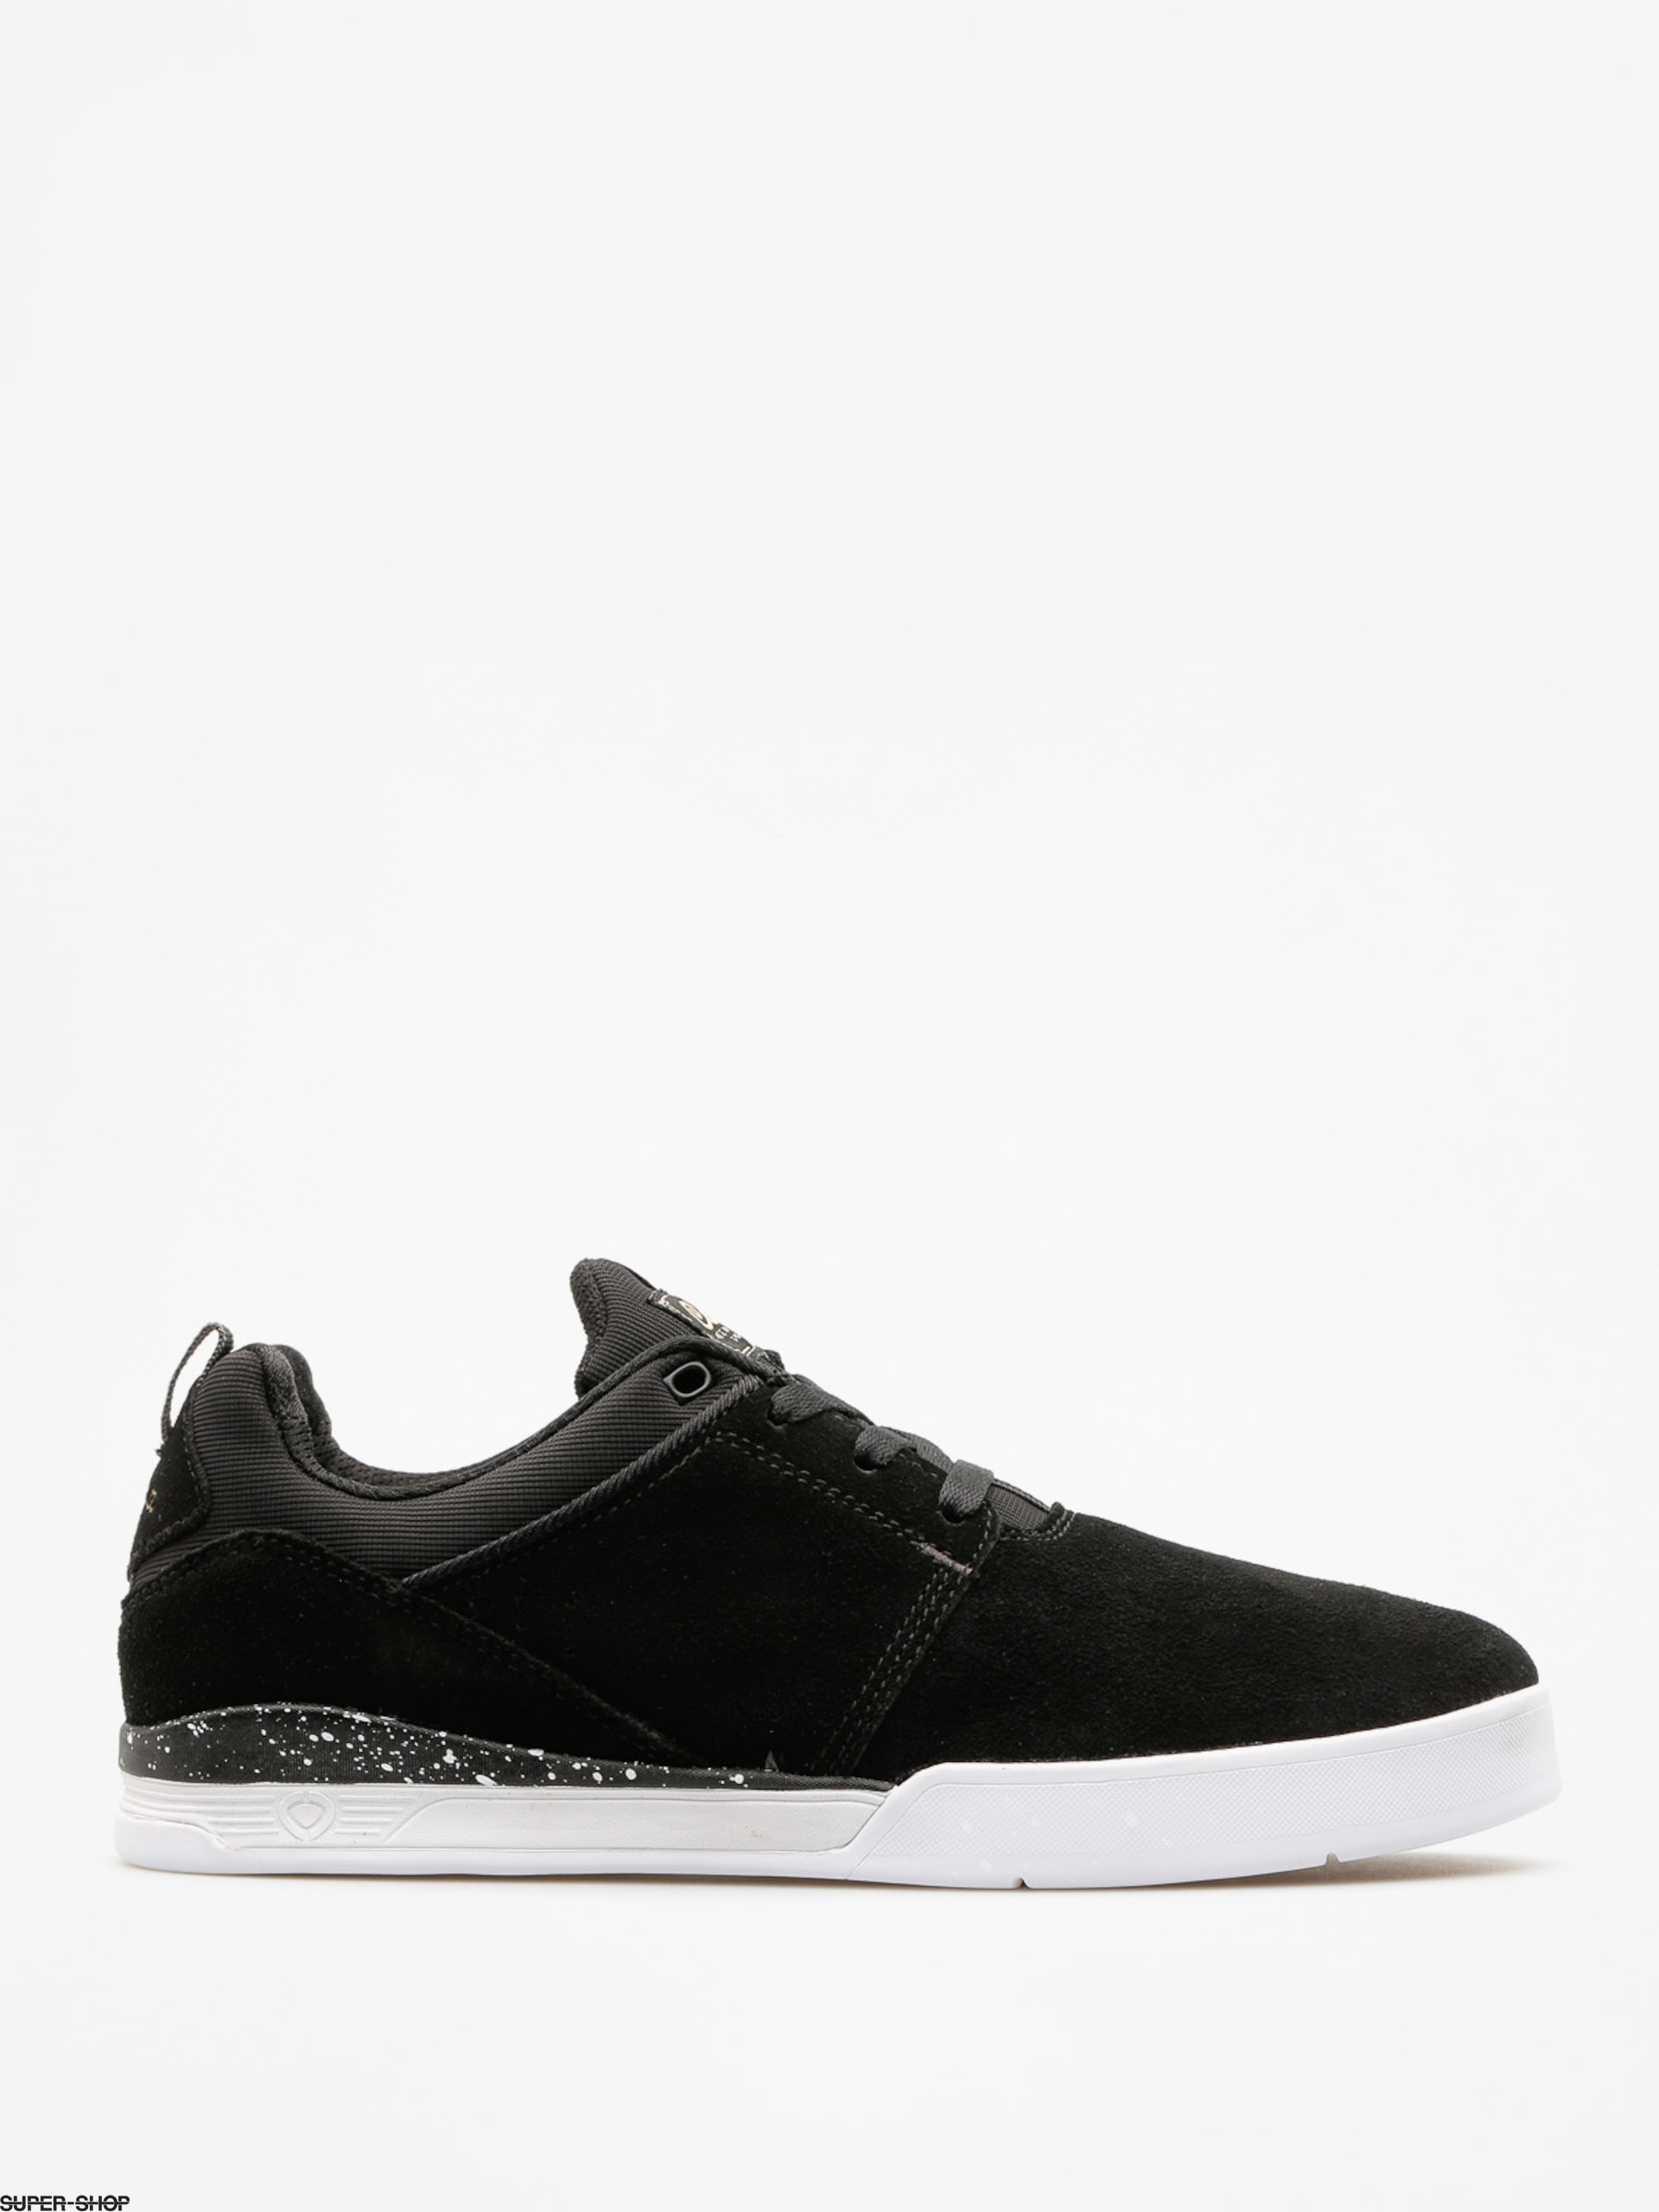 Circa Shoes Neen (black/white/gum)